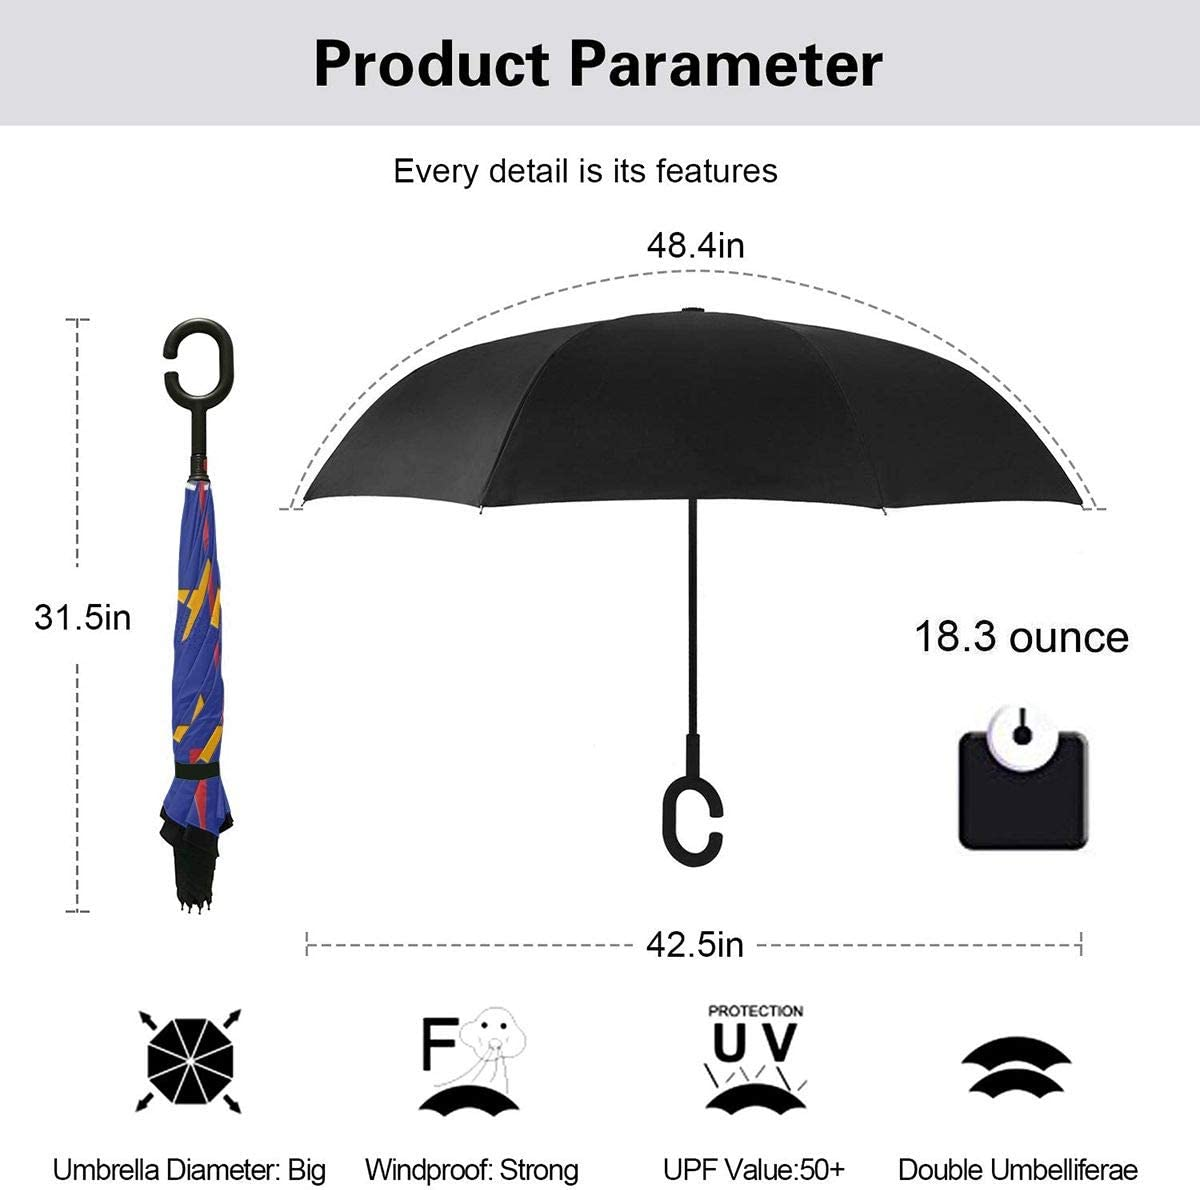 PYFXSALA Star Bell Windproof Inverted Umbrella Double Layer UV Protection Folding Reverse Umbrella for Car Rain Outdoor Self Stand Upside Down with C-Shaped Handle